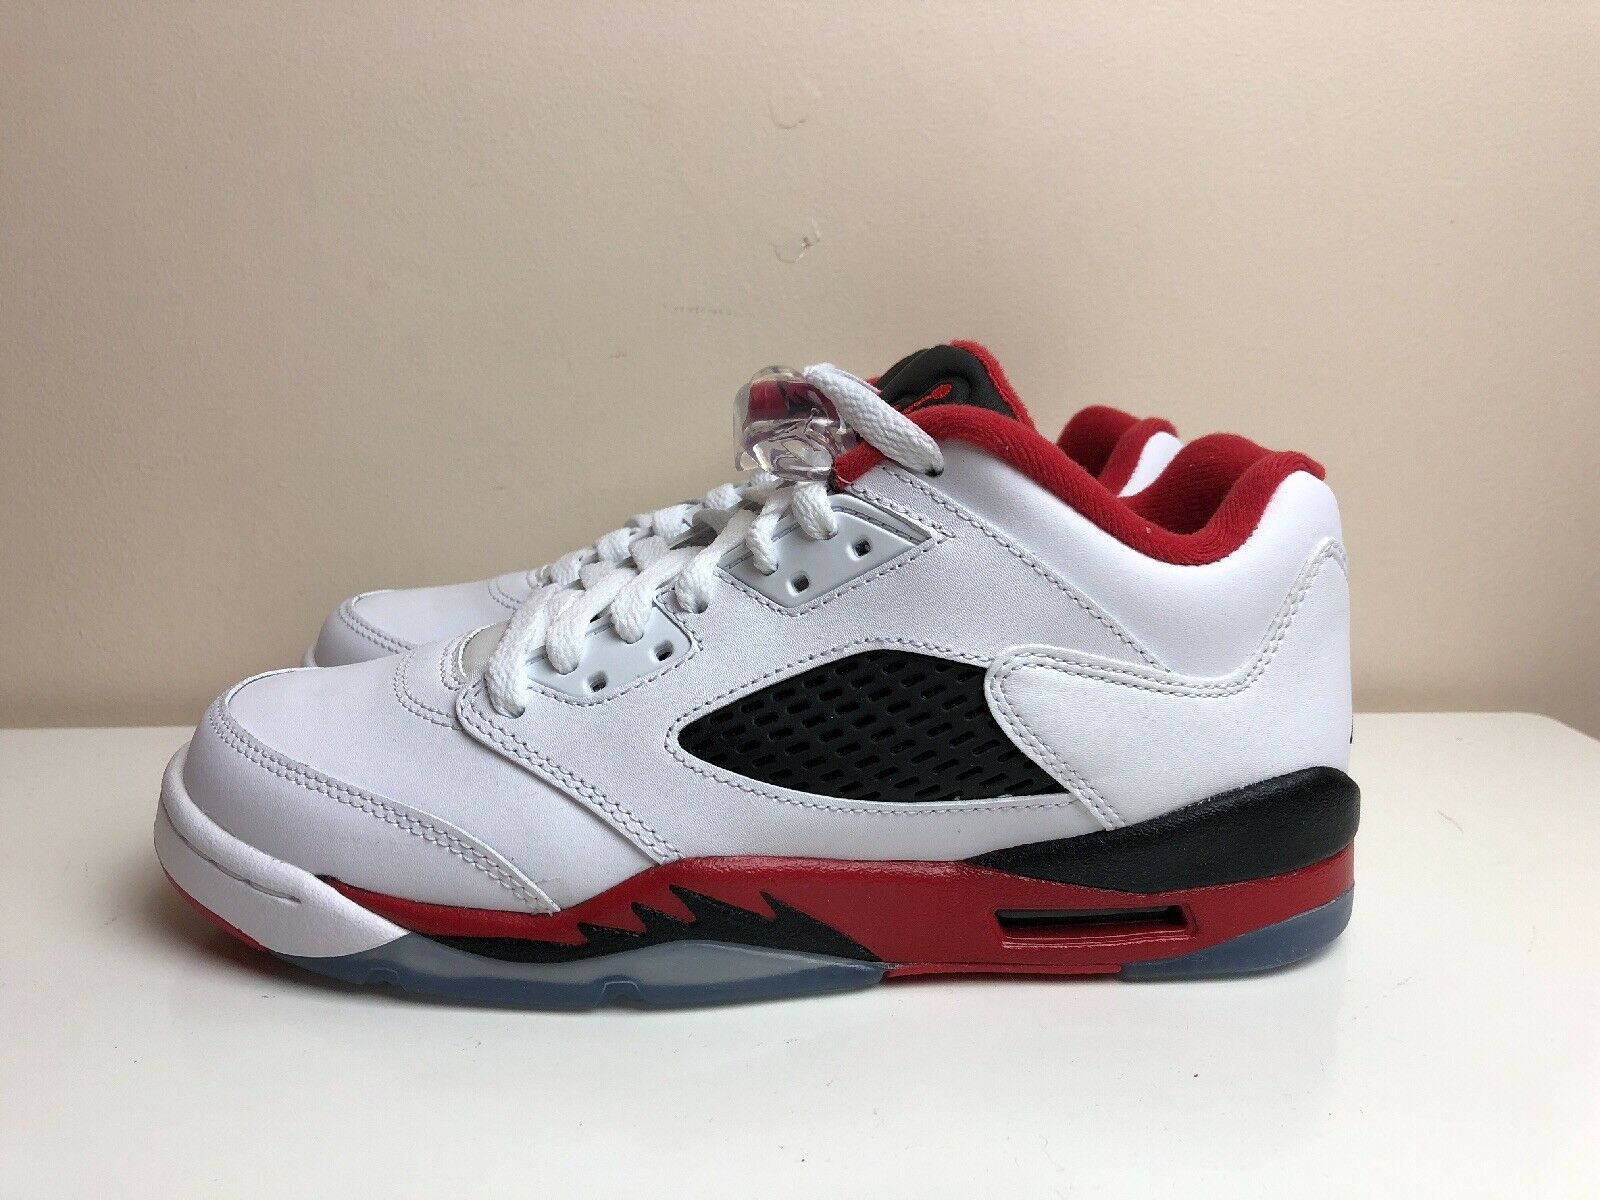 Nike Air Jordan 5 Retro Low GS Chaussures Blanc Rouge UK 6 EUR 40 314338 101